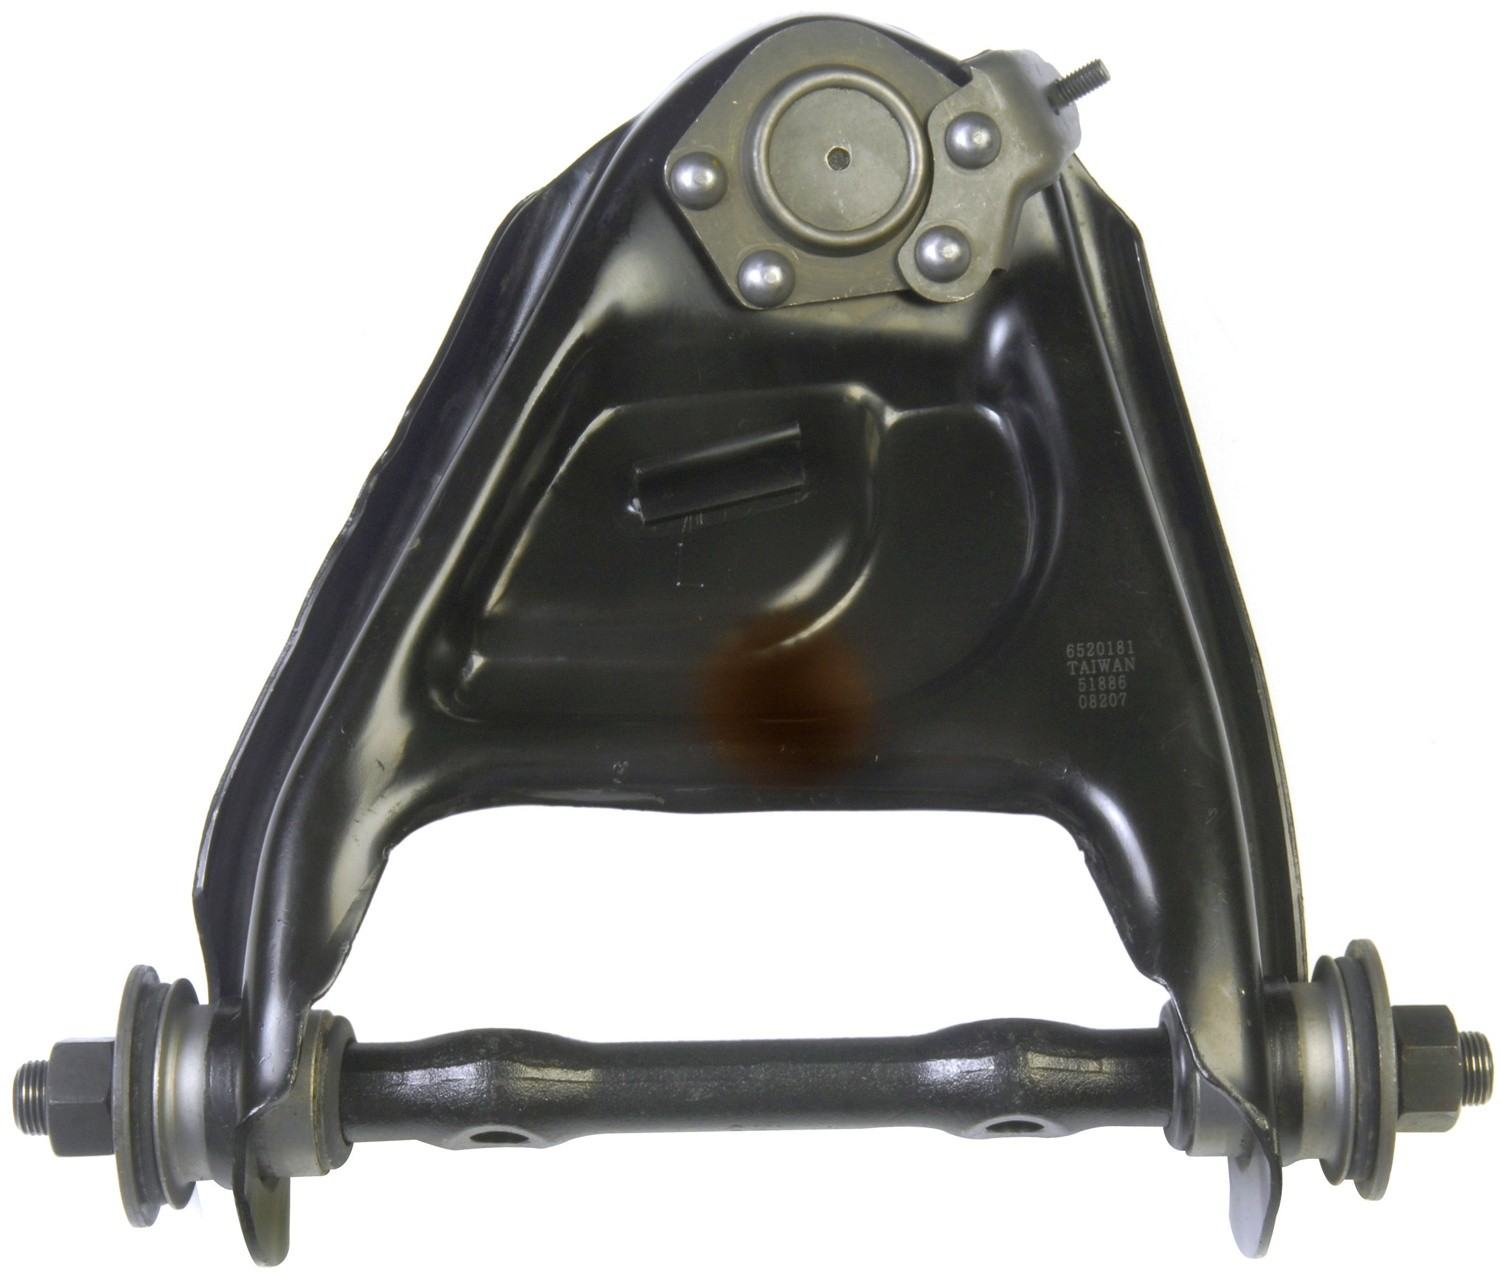 DORMAN OE SOLUTIONS - Suspension Control Arm And Ball Joint Assembly - DRE 520-181